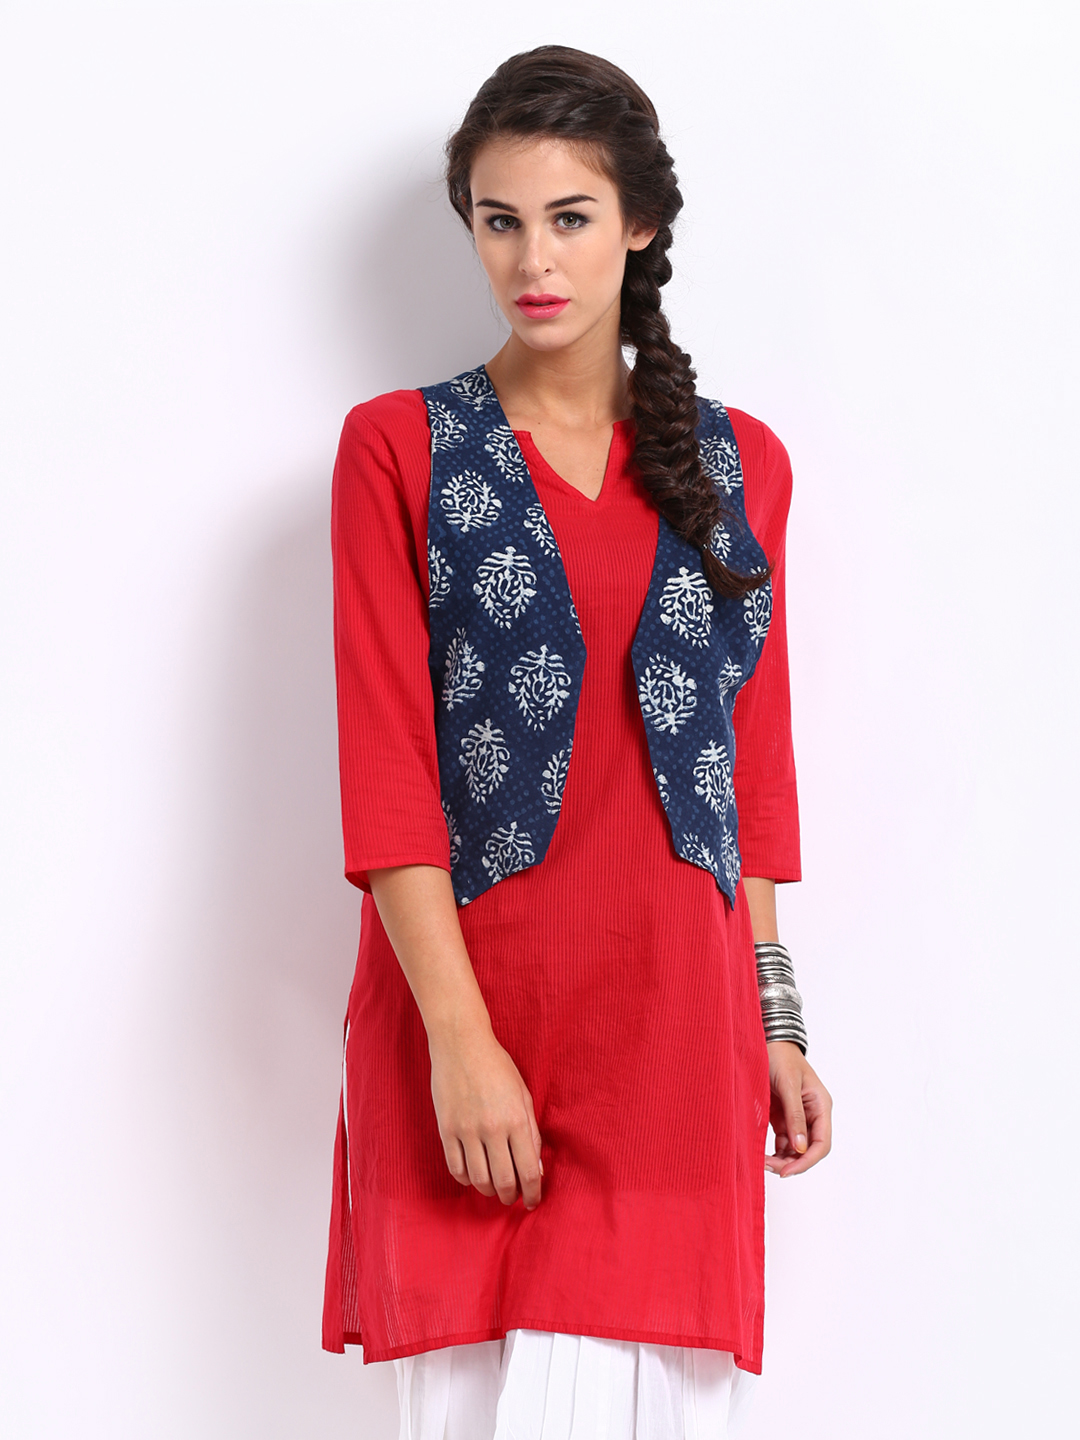 10 Styles of Kurtis for Jeans - FashionPro